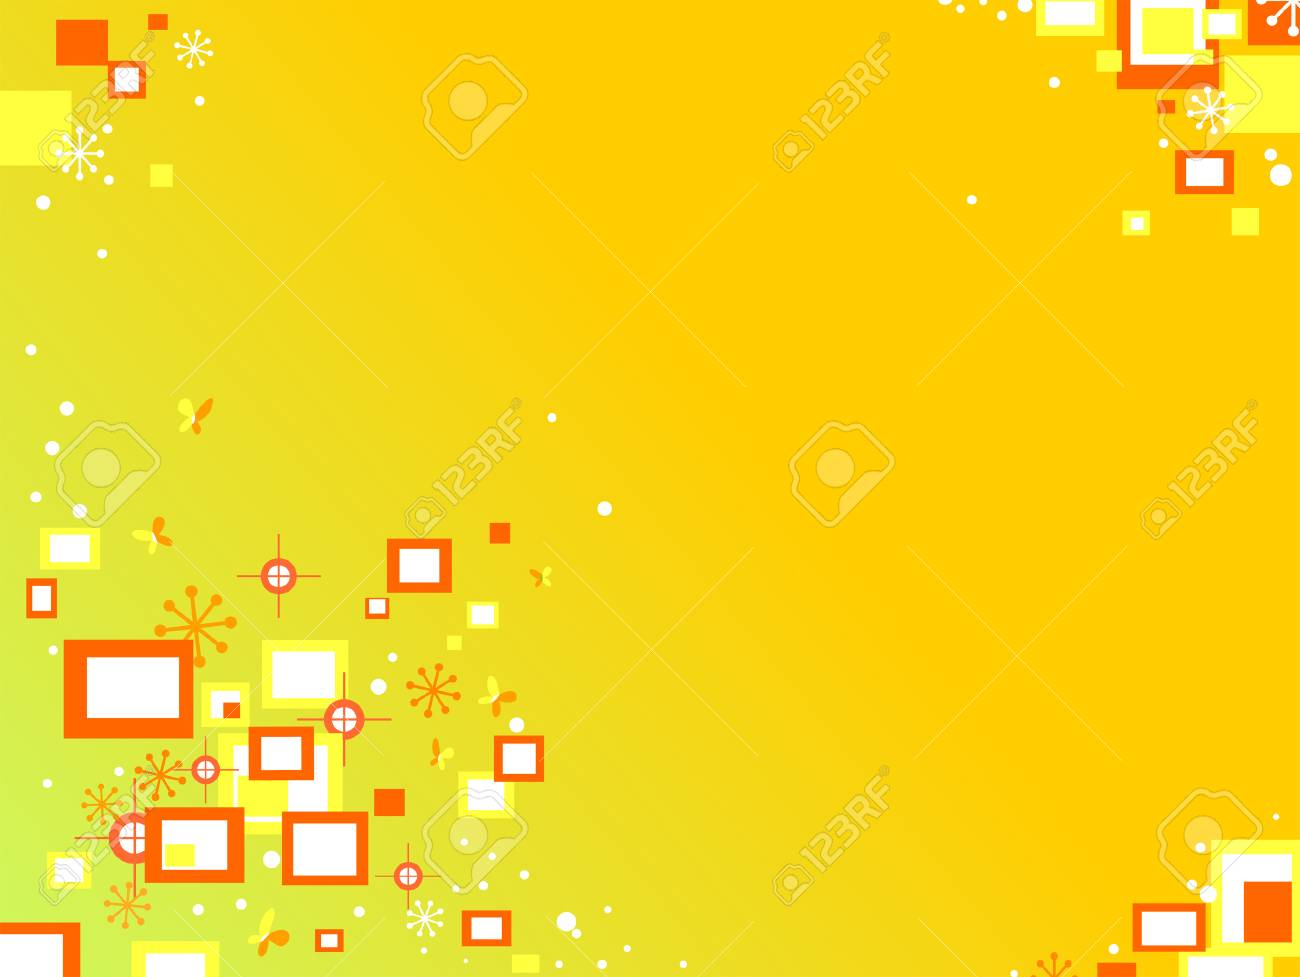 Squares Background in Yellow and Orange Stock Vector - 3319116